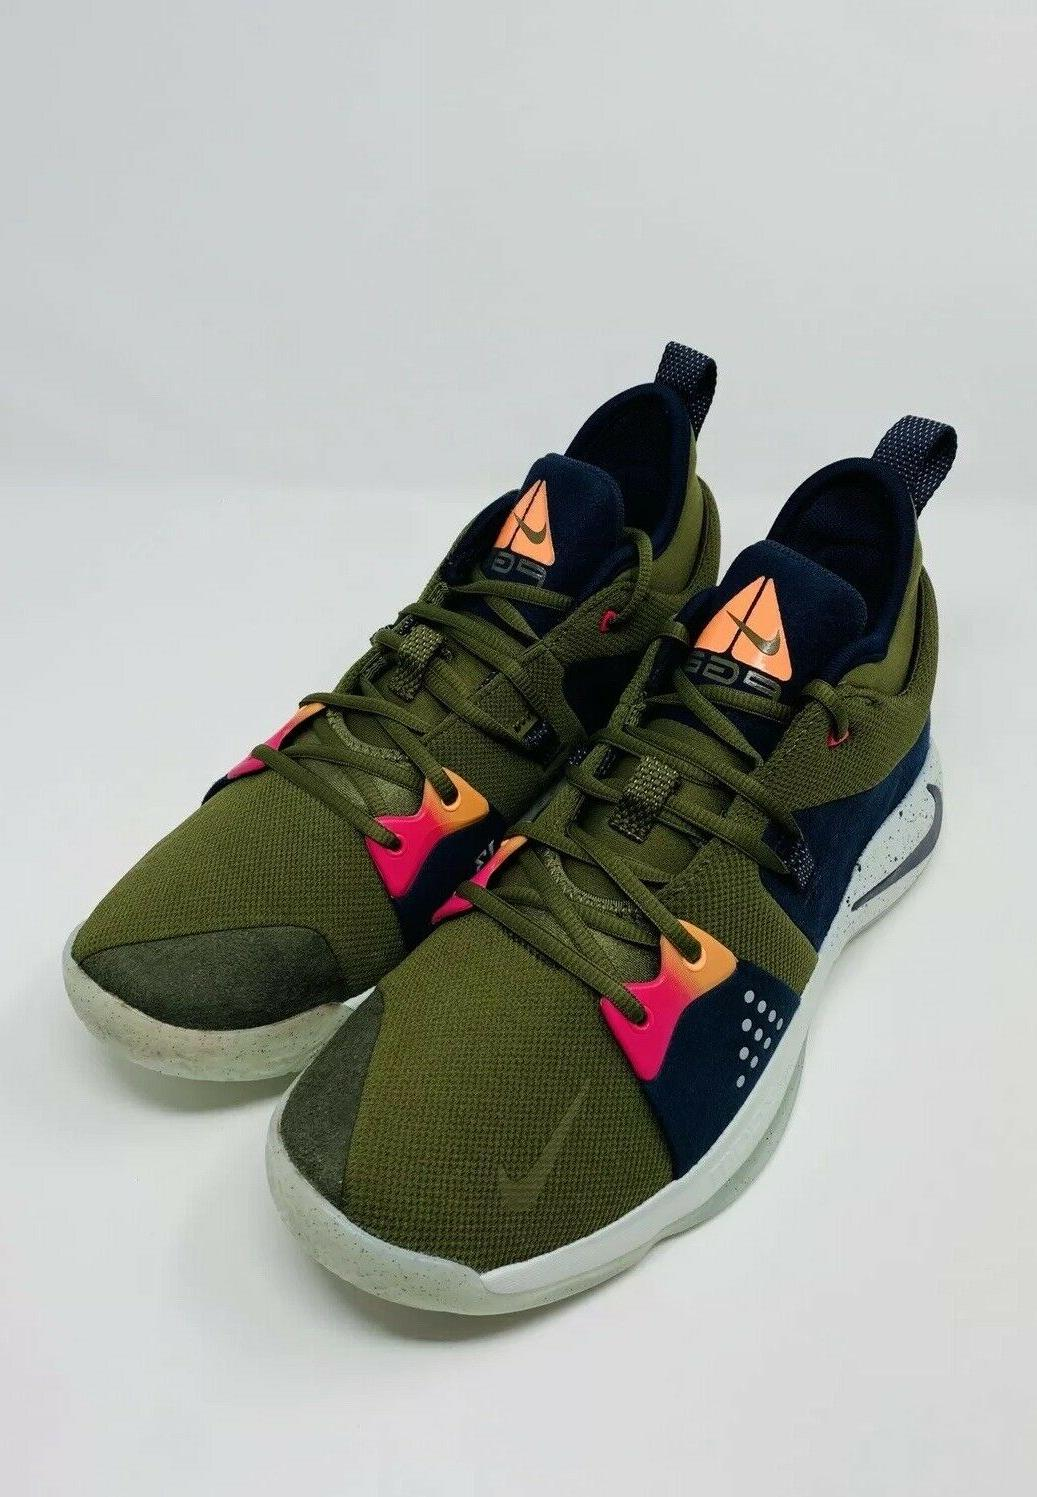 Nike 2 ACG Olive Basketball Shoes AJ2039-300 Men's Size 11